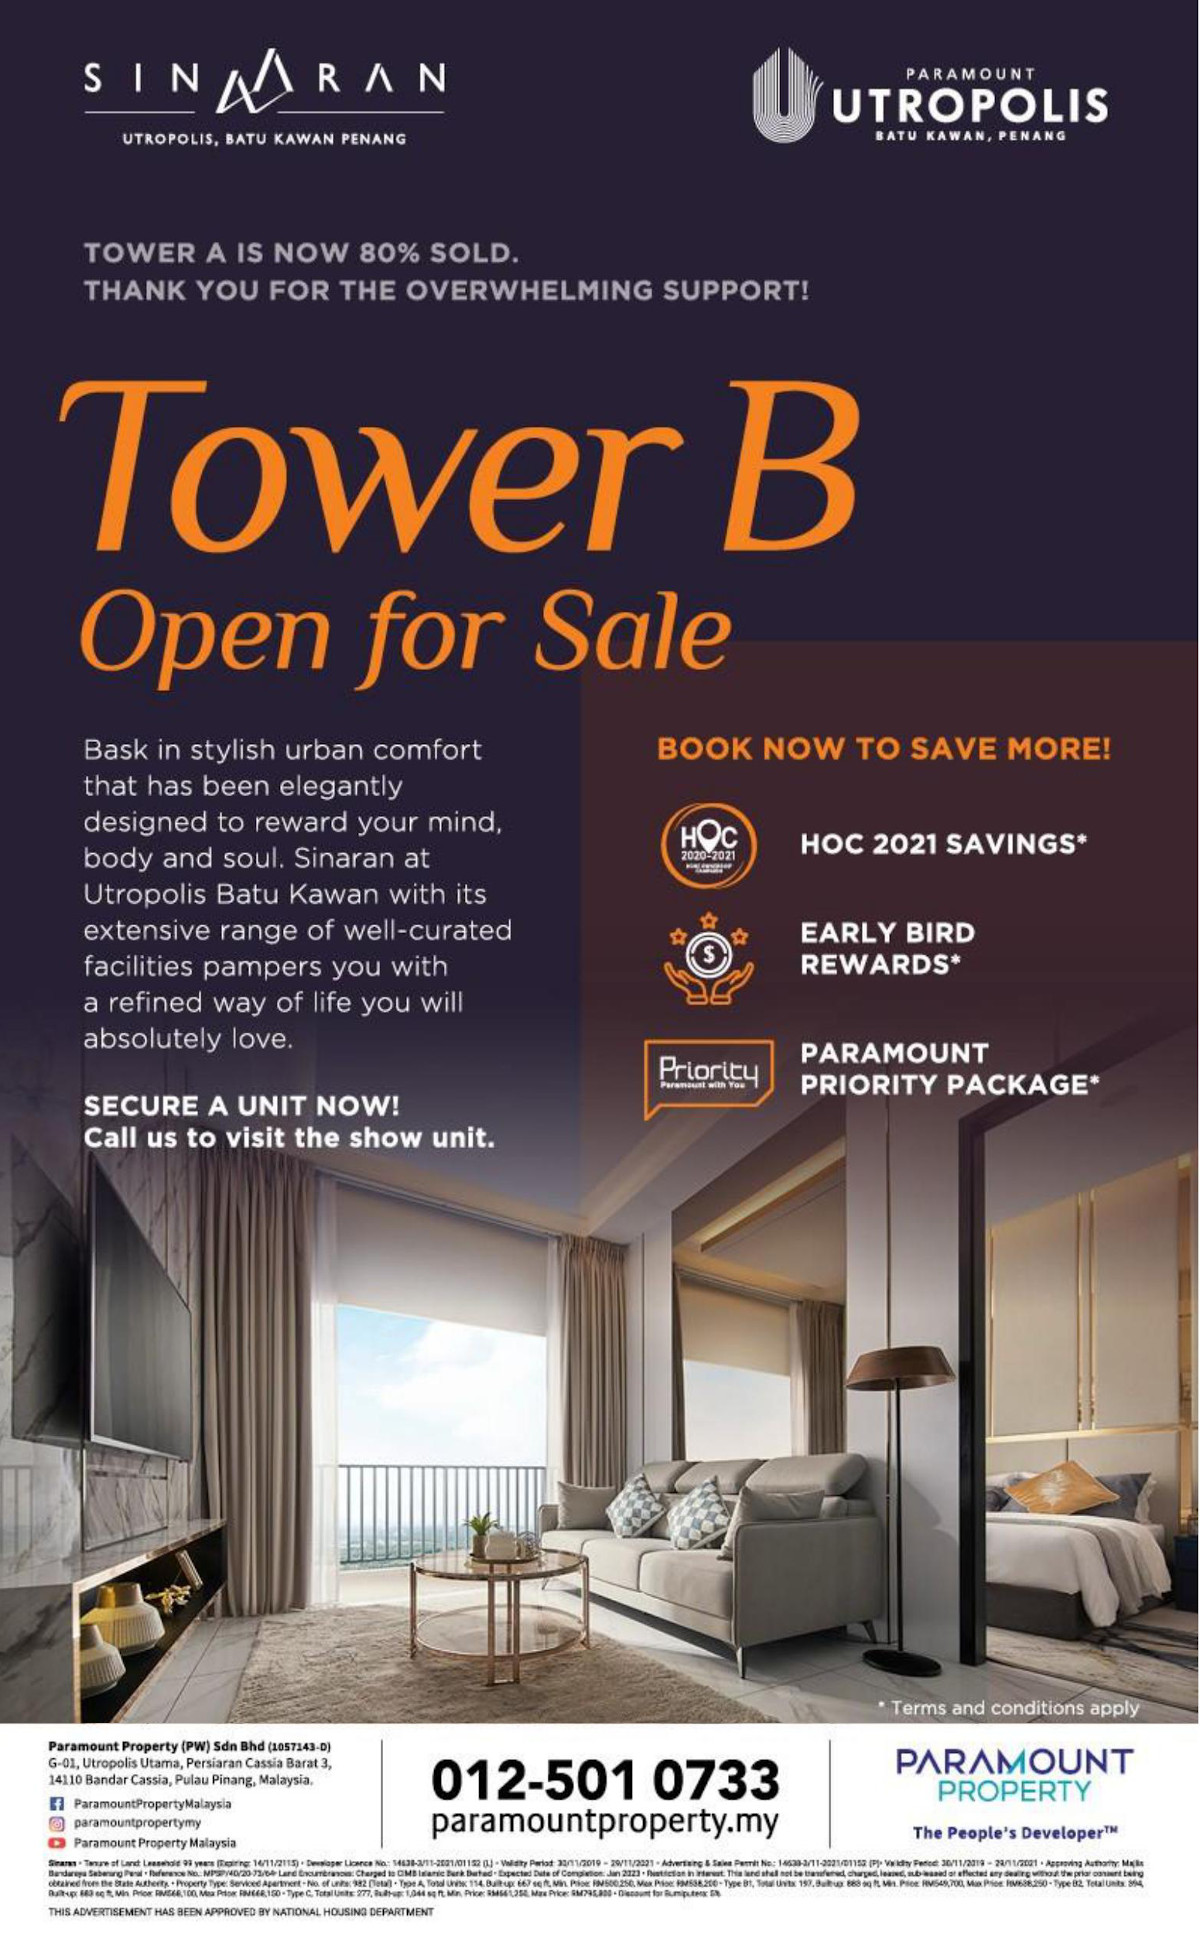 sinaran-tower-b-open-for-sale-apr2021